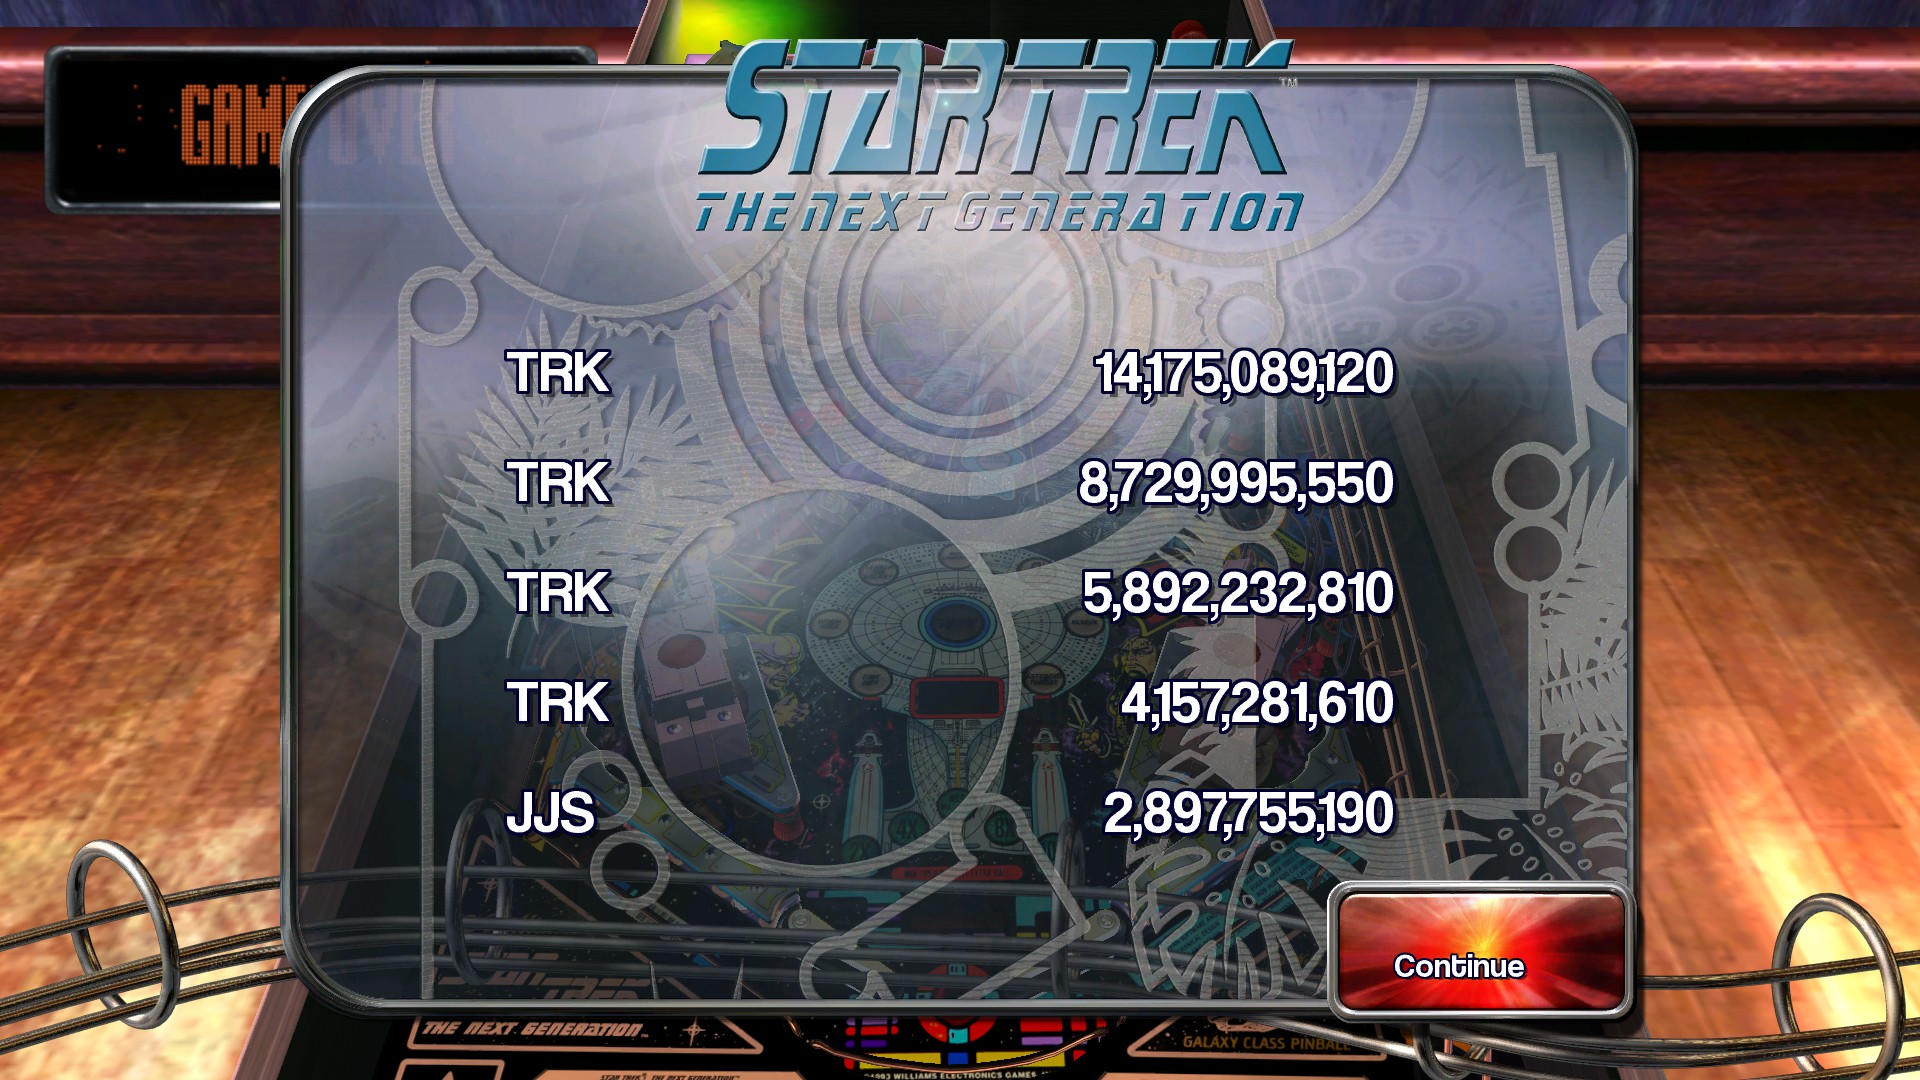 Pinball Arcade: Star Trek: The Next Generation 14,175,089,120 points